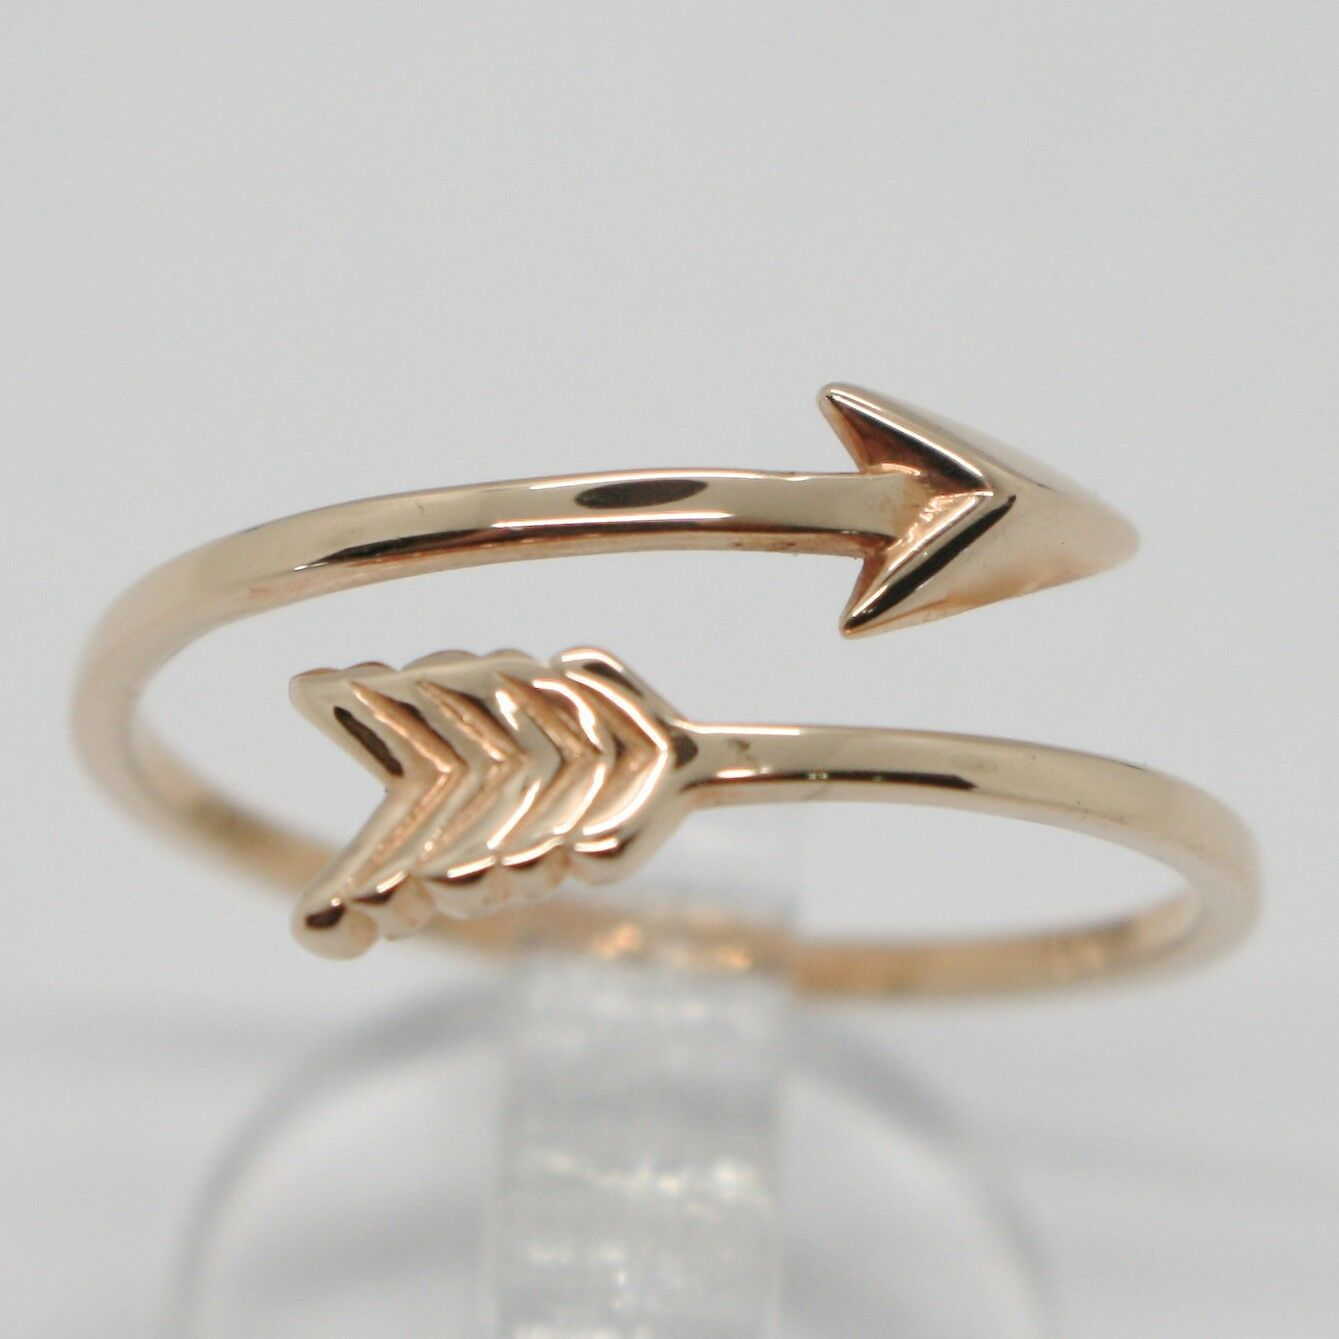 18K ROSE GOLD ARROW RING SMOOTH BRIGHT LUMINOUS DOUBLE WIRE MADE IN ITALY